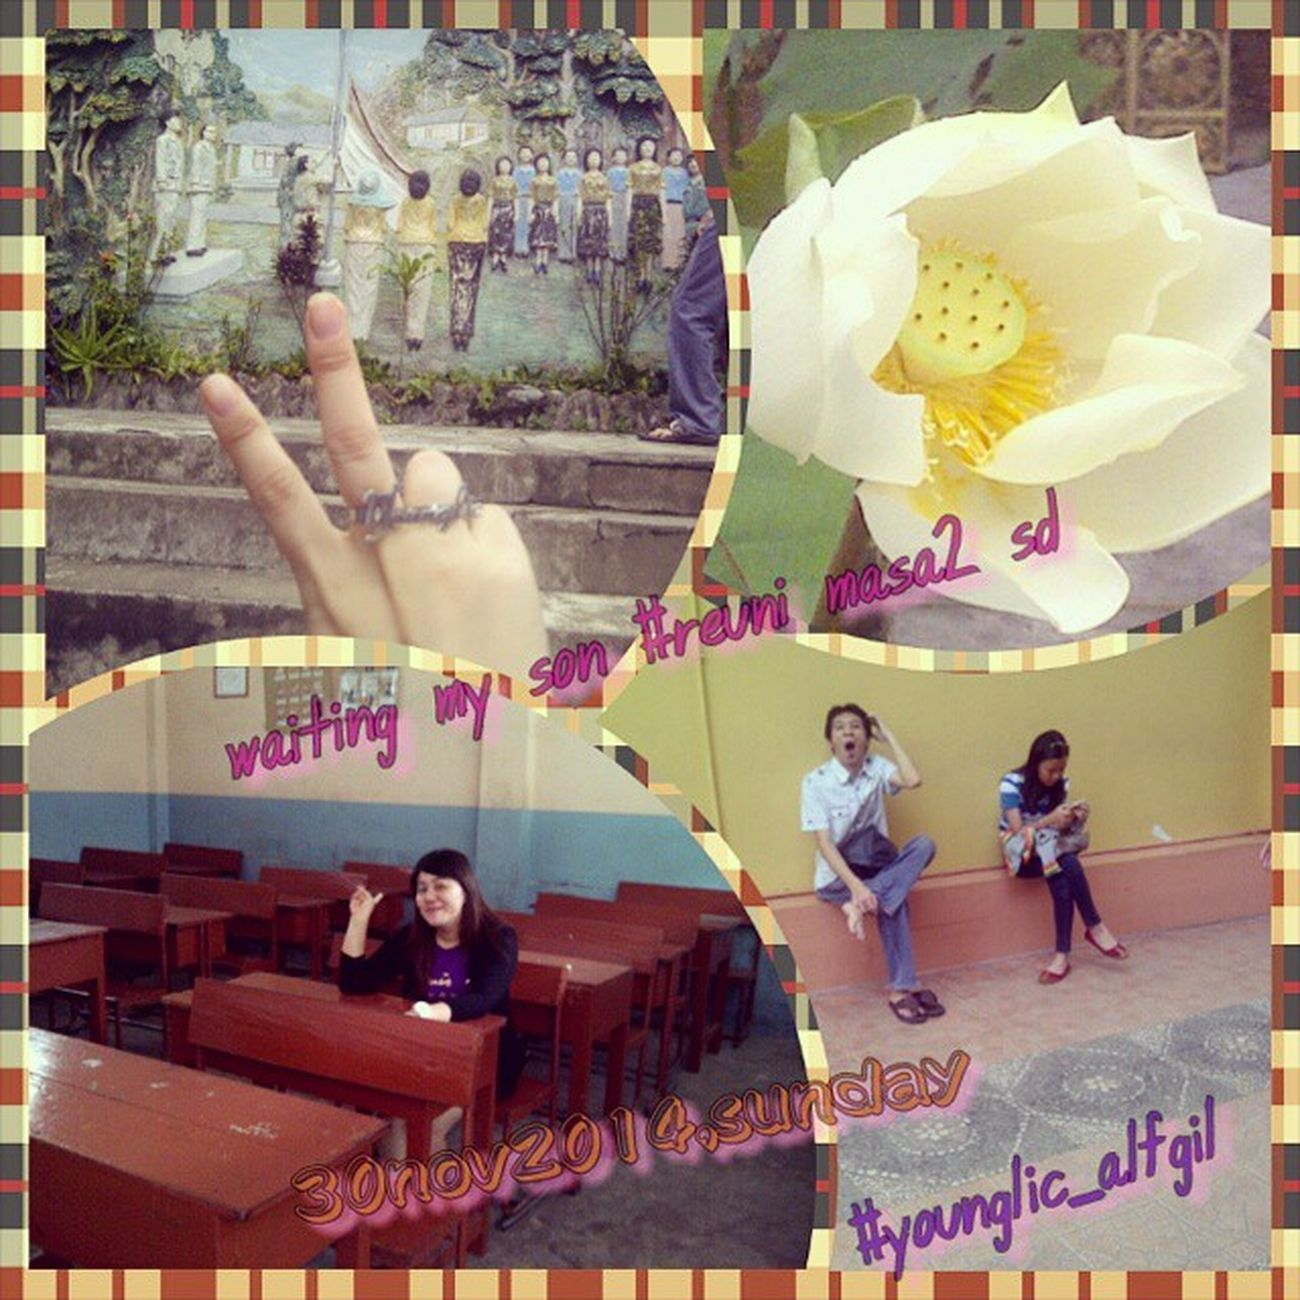 Latepost Younglic_alfgil Sundaymorning Sundaylol weekendmorning weekend weekendday vihara sakyakirti sdsariputra reunionmoment withourfamz withmyhoney